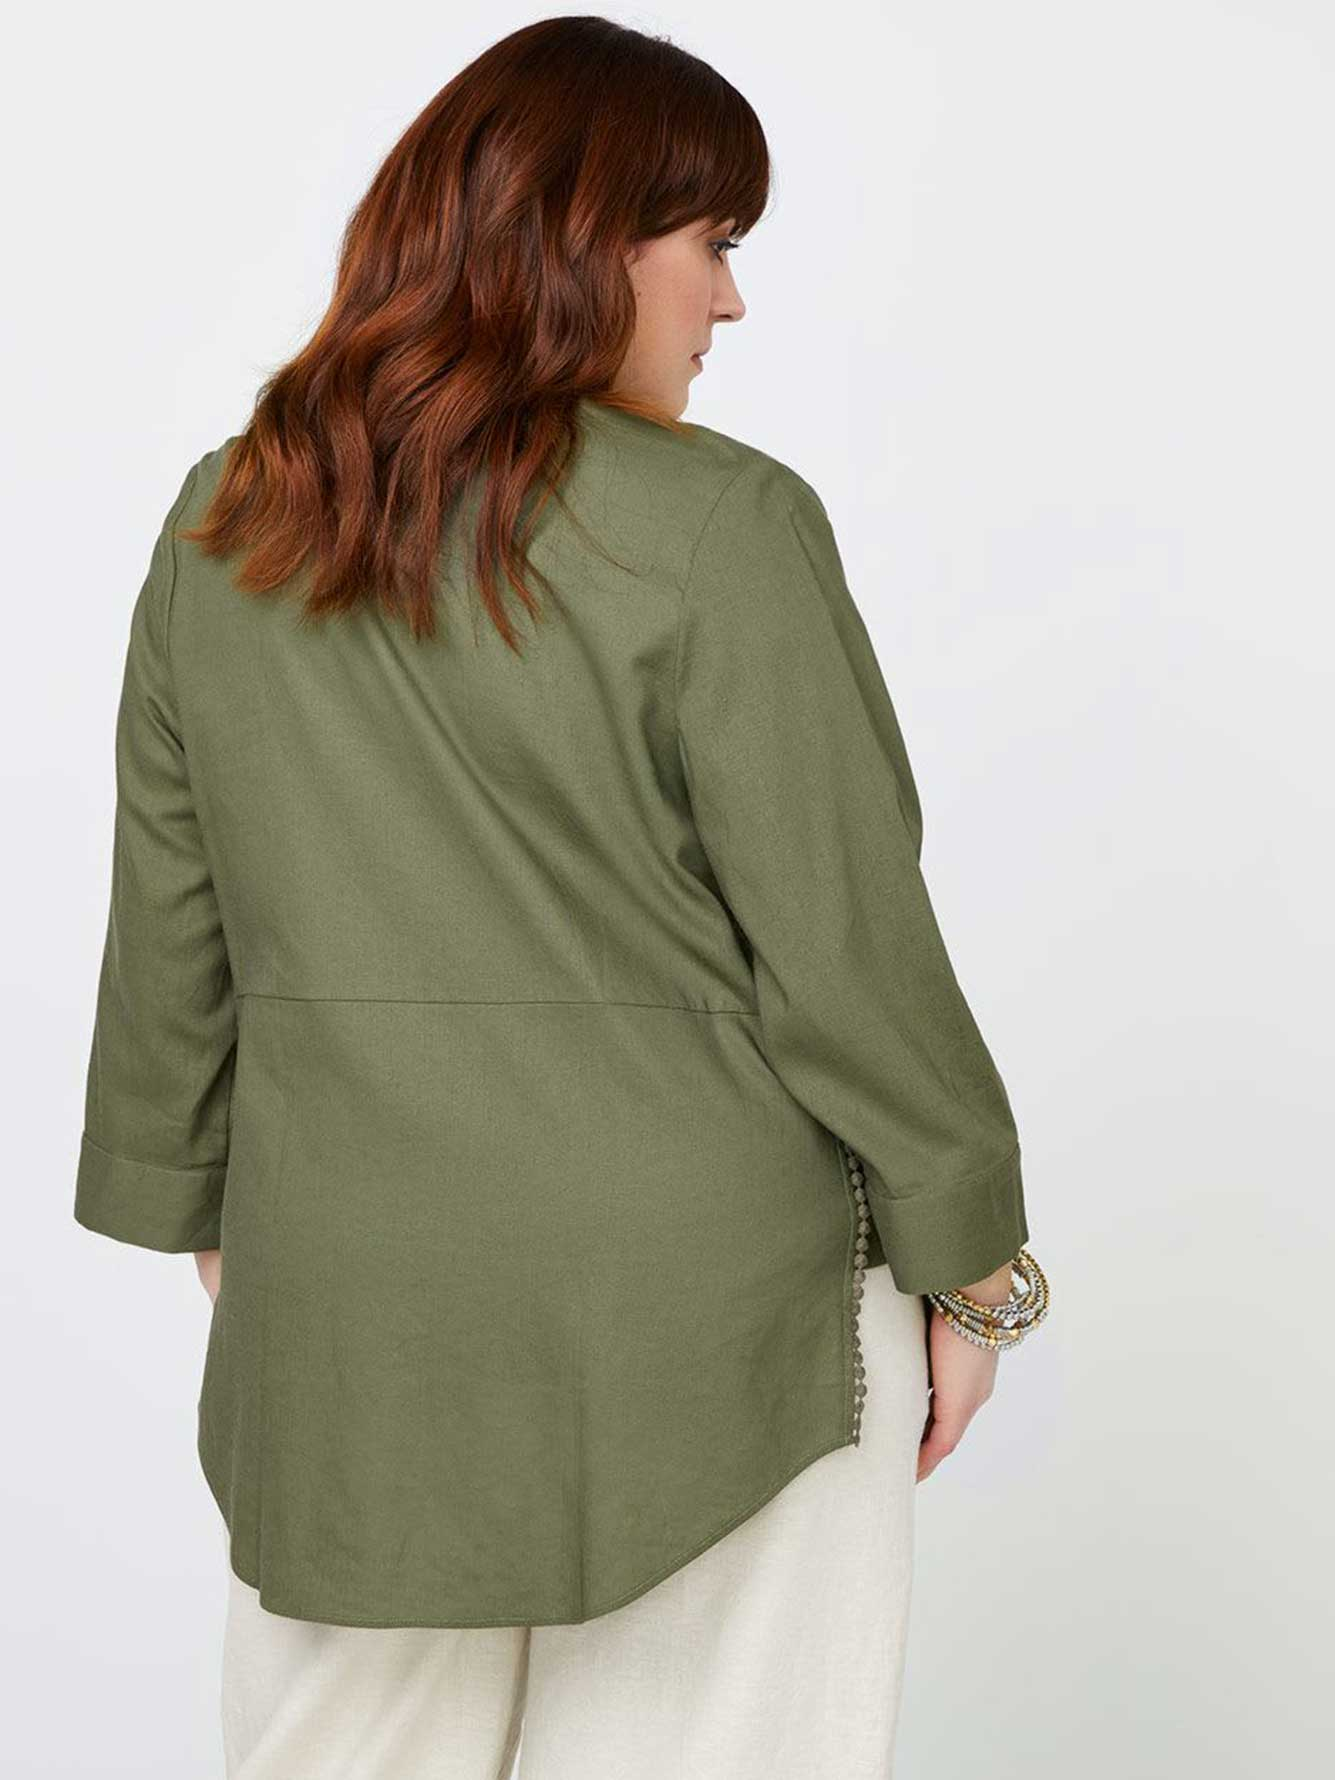 Linen Blouse - In Every Story